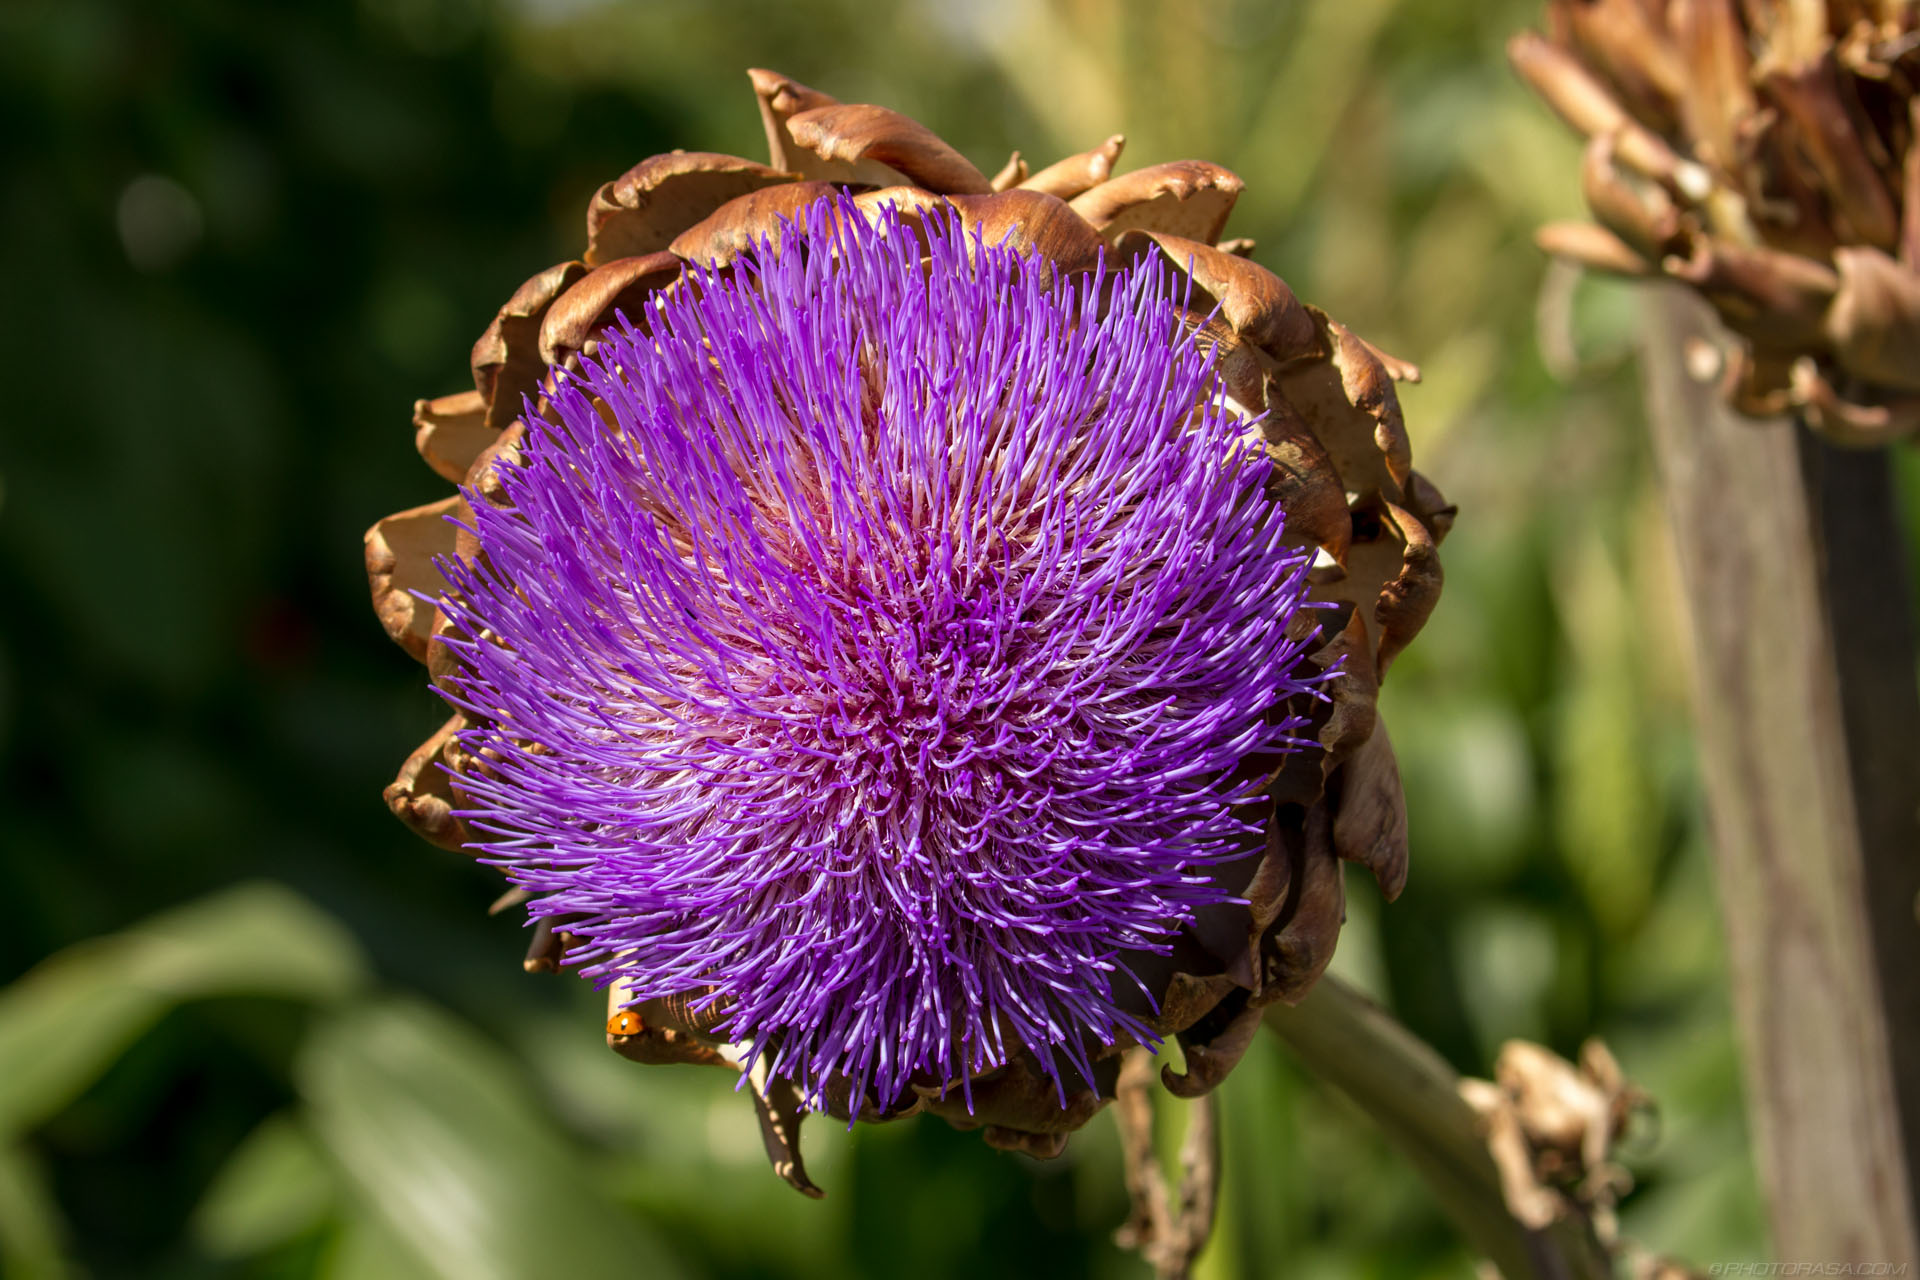 https://photorasa.com/strange-exotic-flowers/purple-head-of-artichoke-flower/